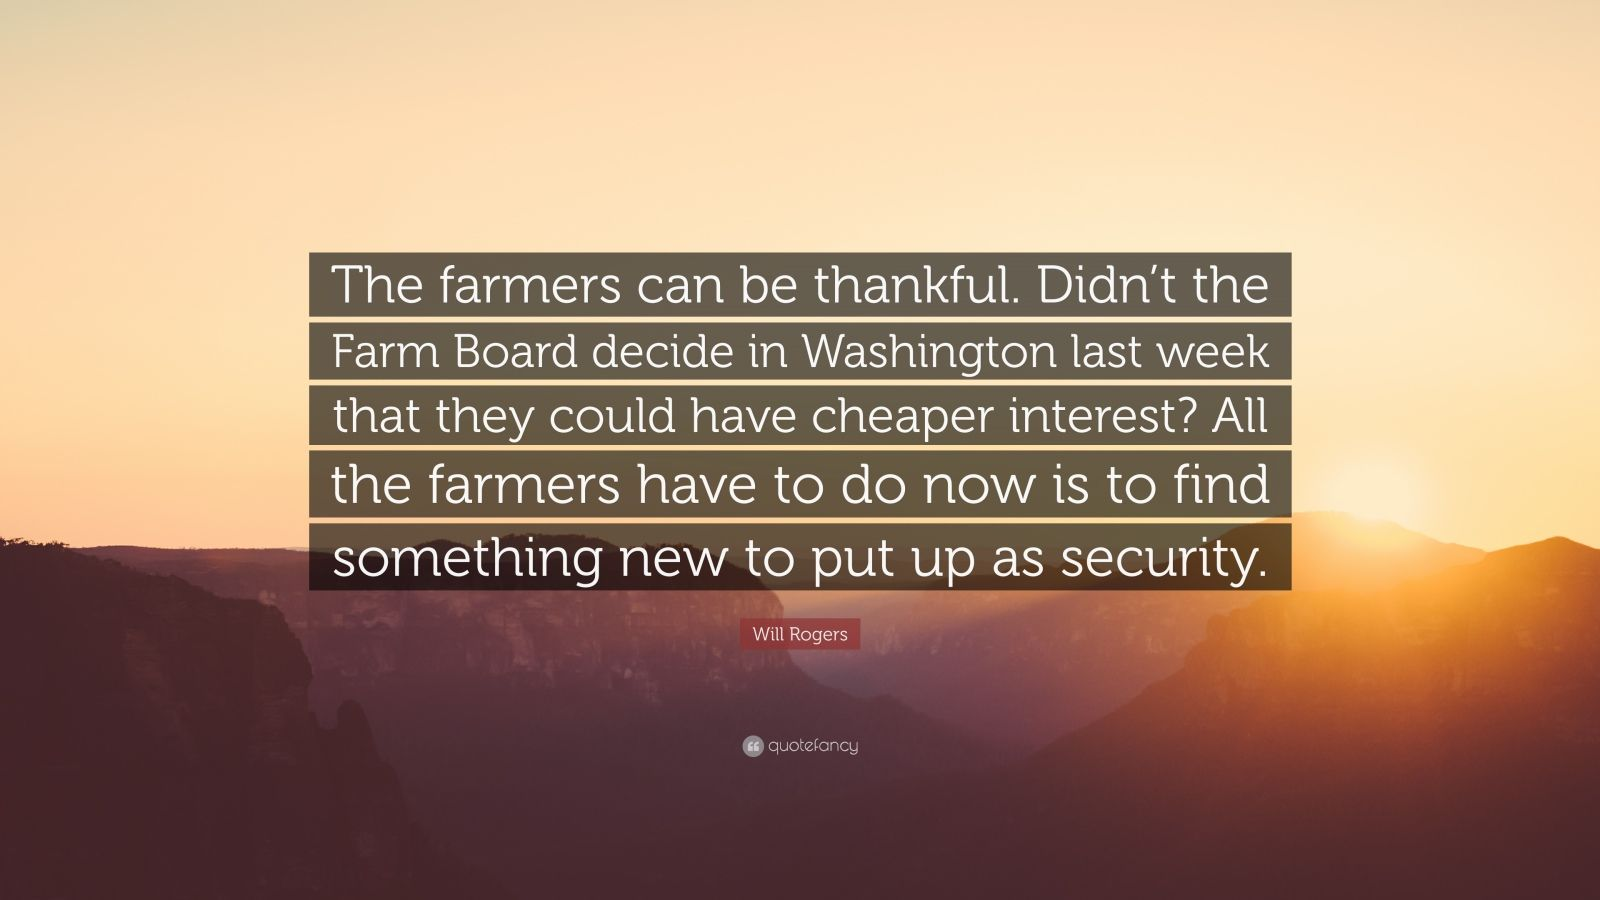 """Will Rogers Quote: """"The farmers can be thankful. Didn't the Farm Board decide in Washington last week that they could have cheaper interest? All the farmers have to do now is to find something new to put up as security."""""""